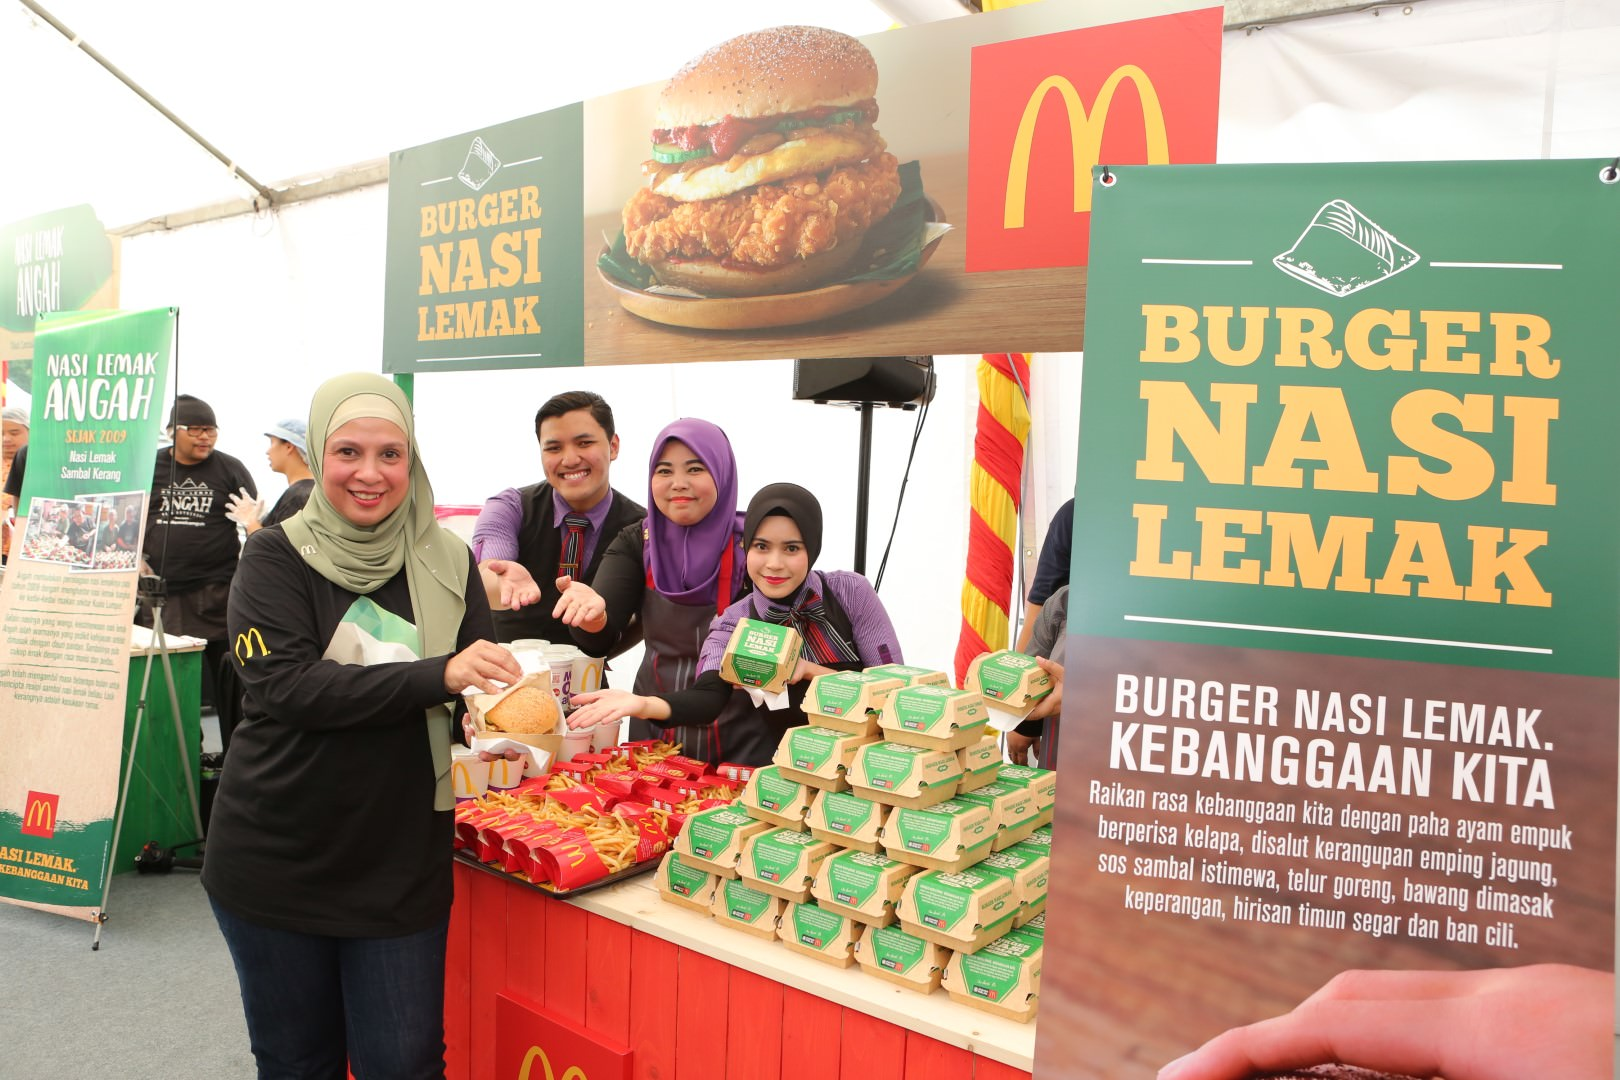 McDonald's Malaysia Chief Marketing Officer, Melati Abdul Hai, officiating the Nasi Lemak Burger launch.